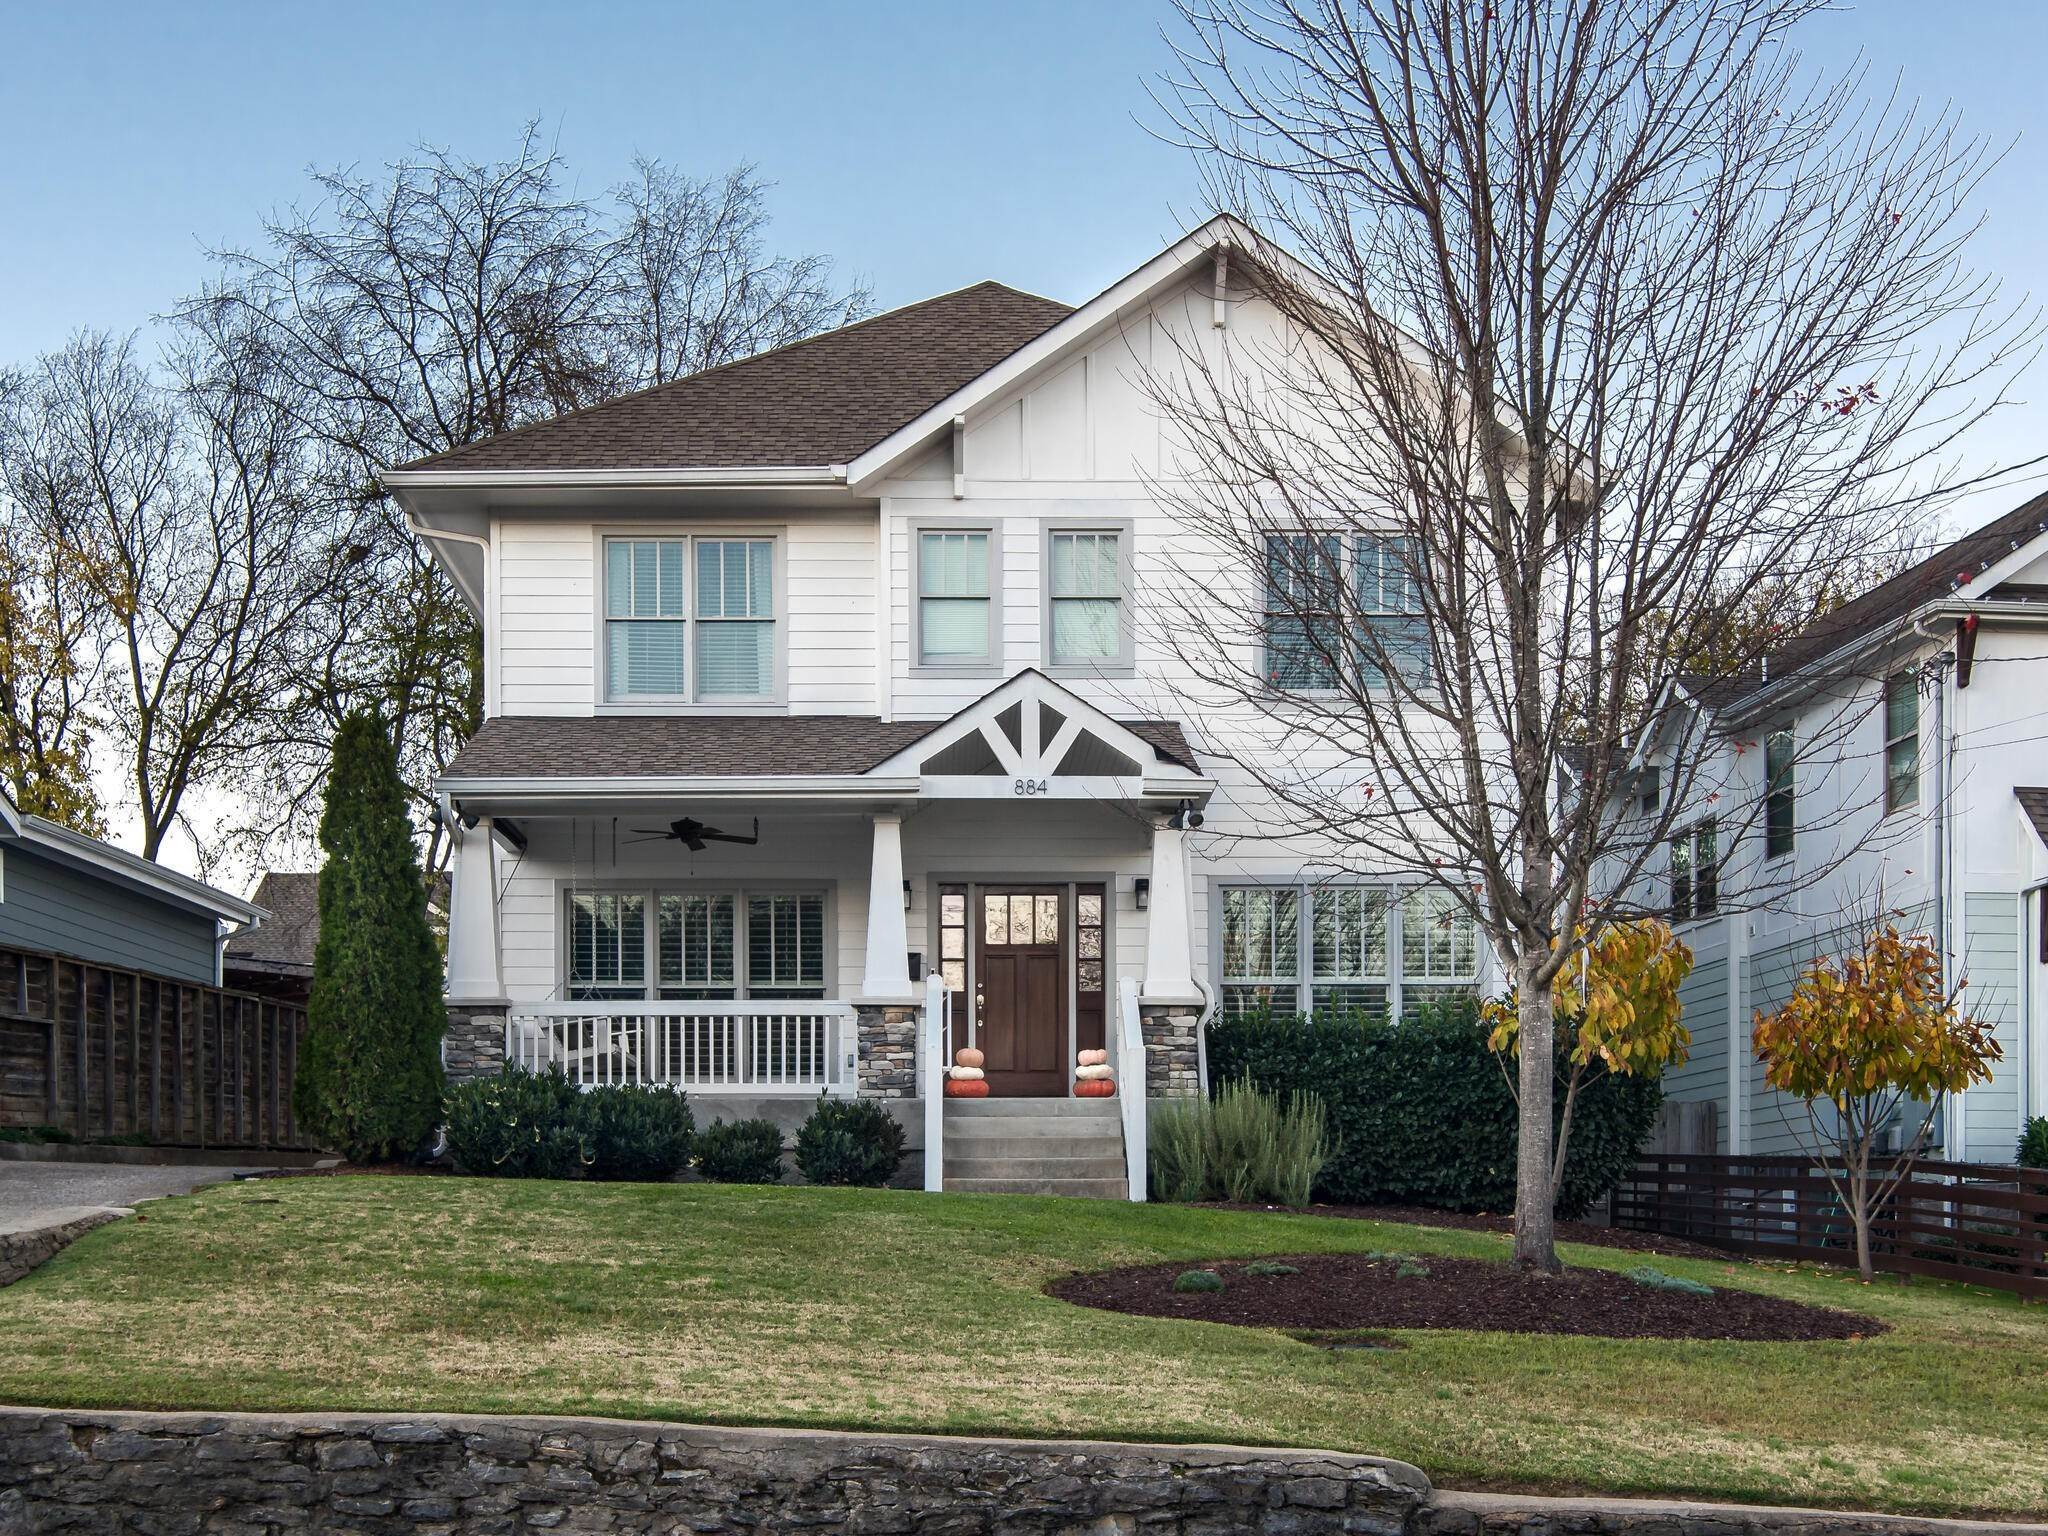 Single Family Homes for Sale at 884 Montrose Avenue Nashville, Tennessee 37204 United States